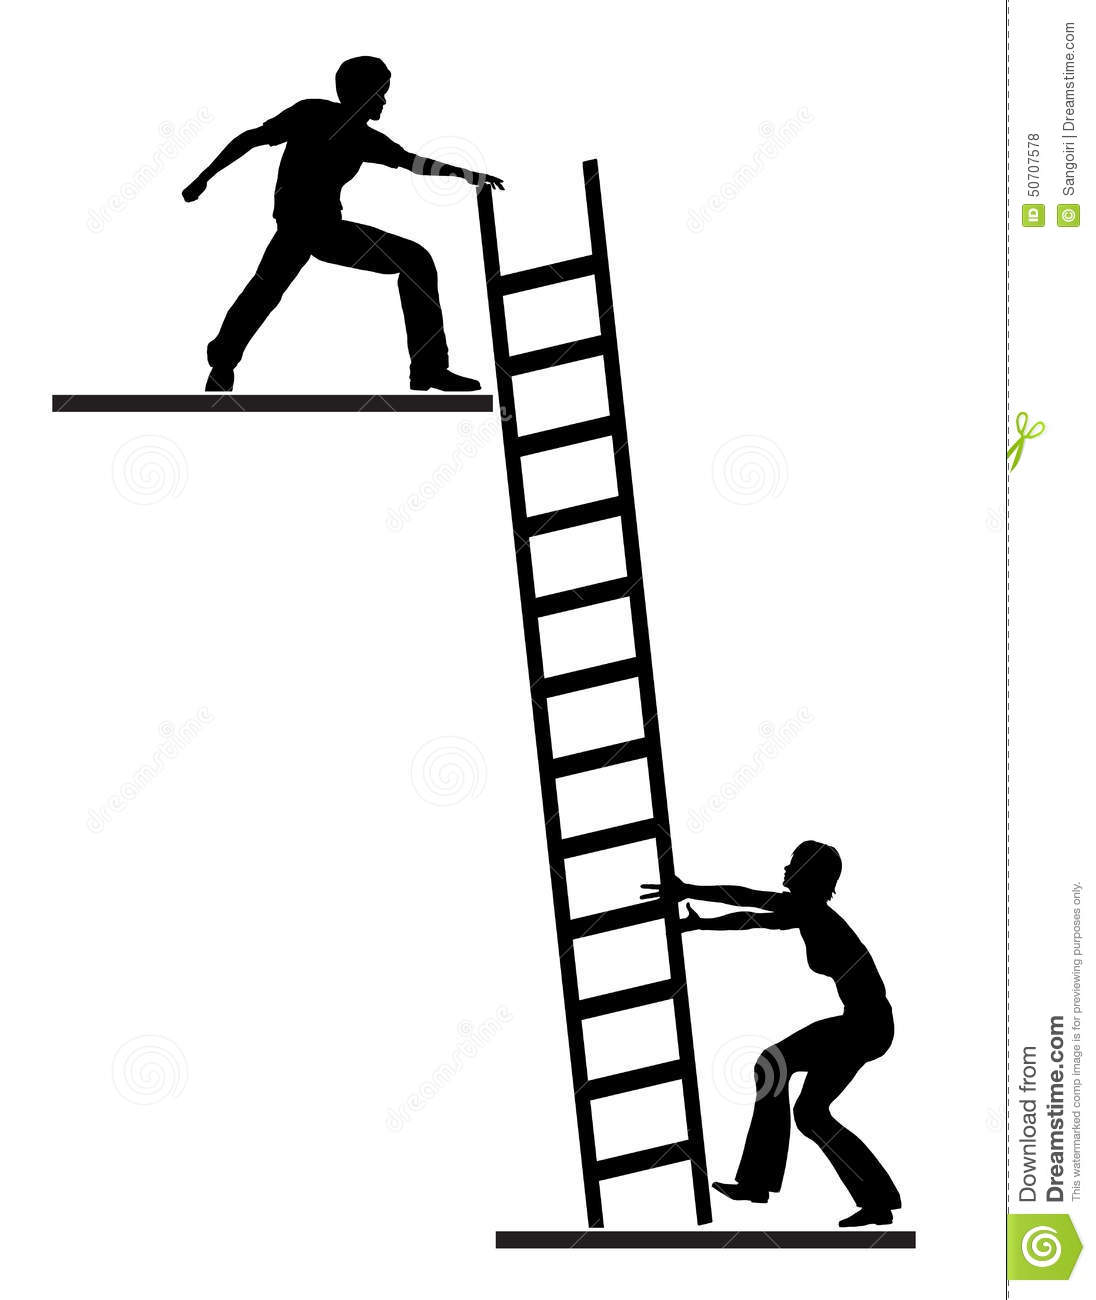 Graphic Climbing Ladder